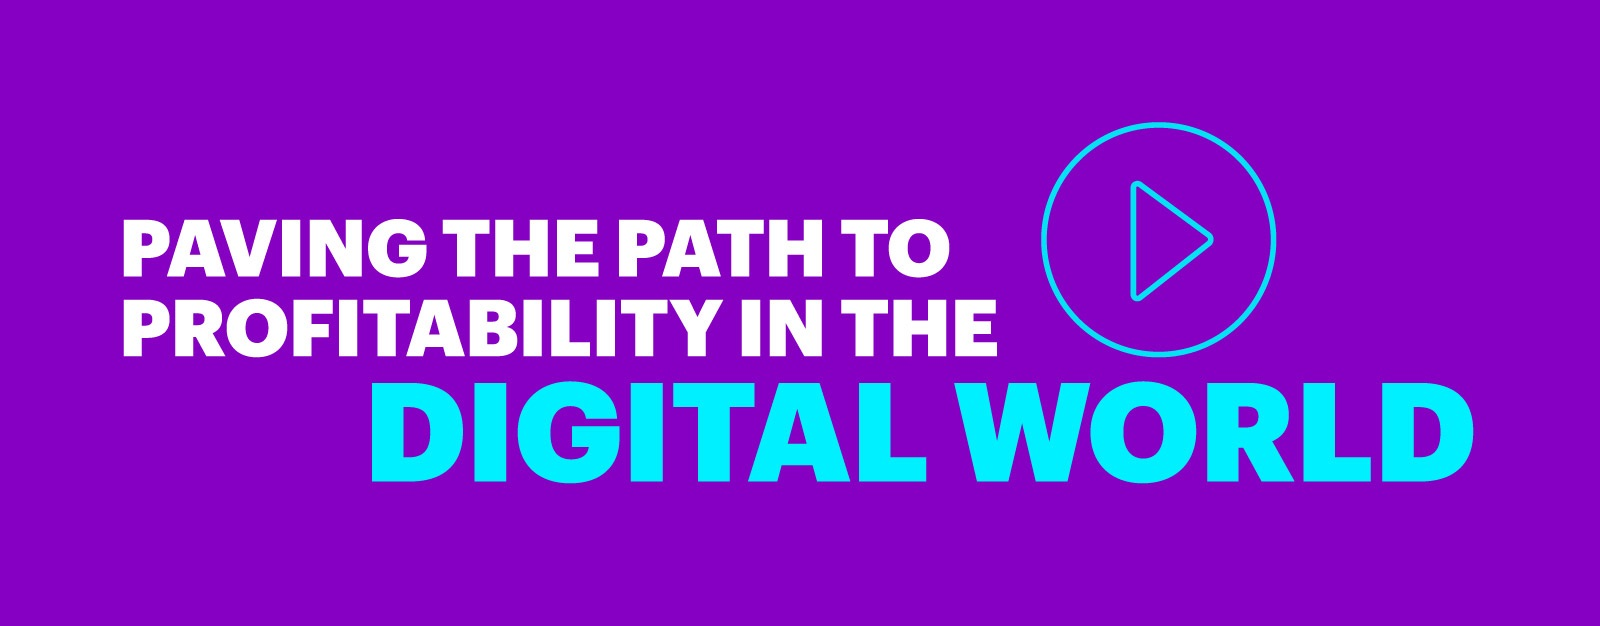 Watch the 'Paving The Path To Profitability In The Digital World' video.